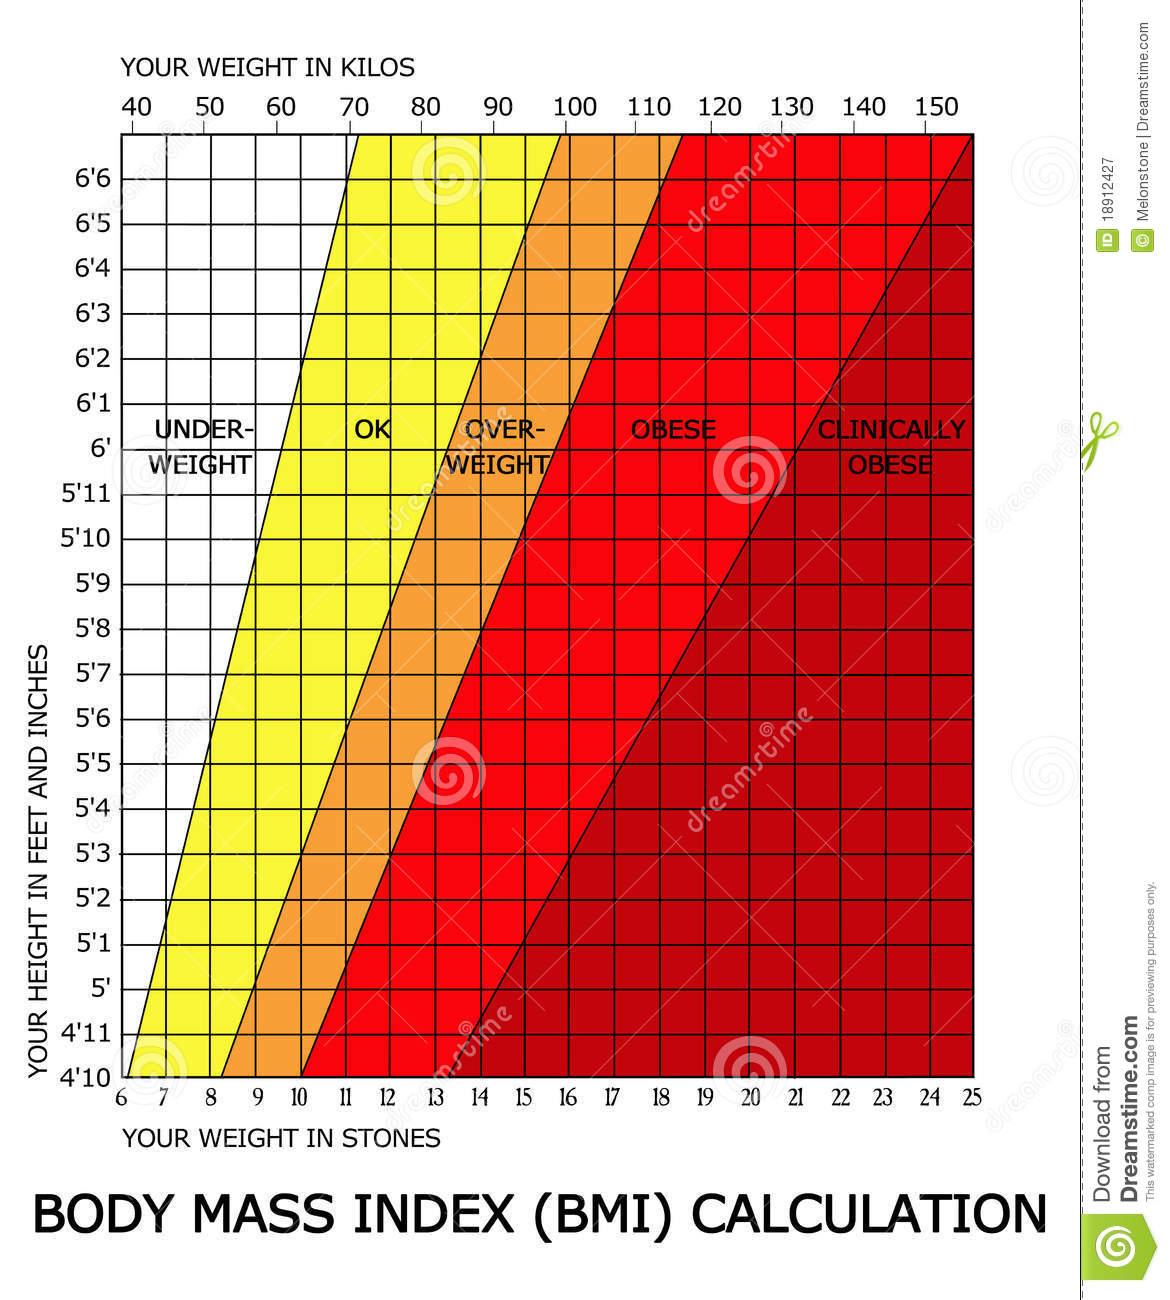 Height weight bmi chart template jeppefm height weight bmi chart template geenschuldenfo Image collections